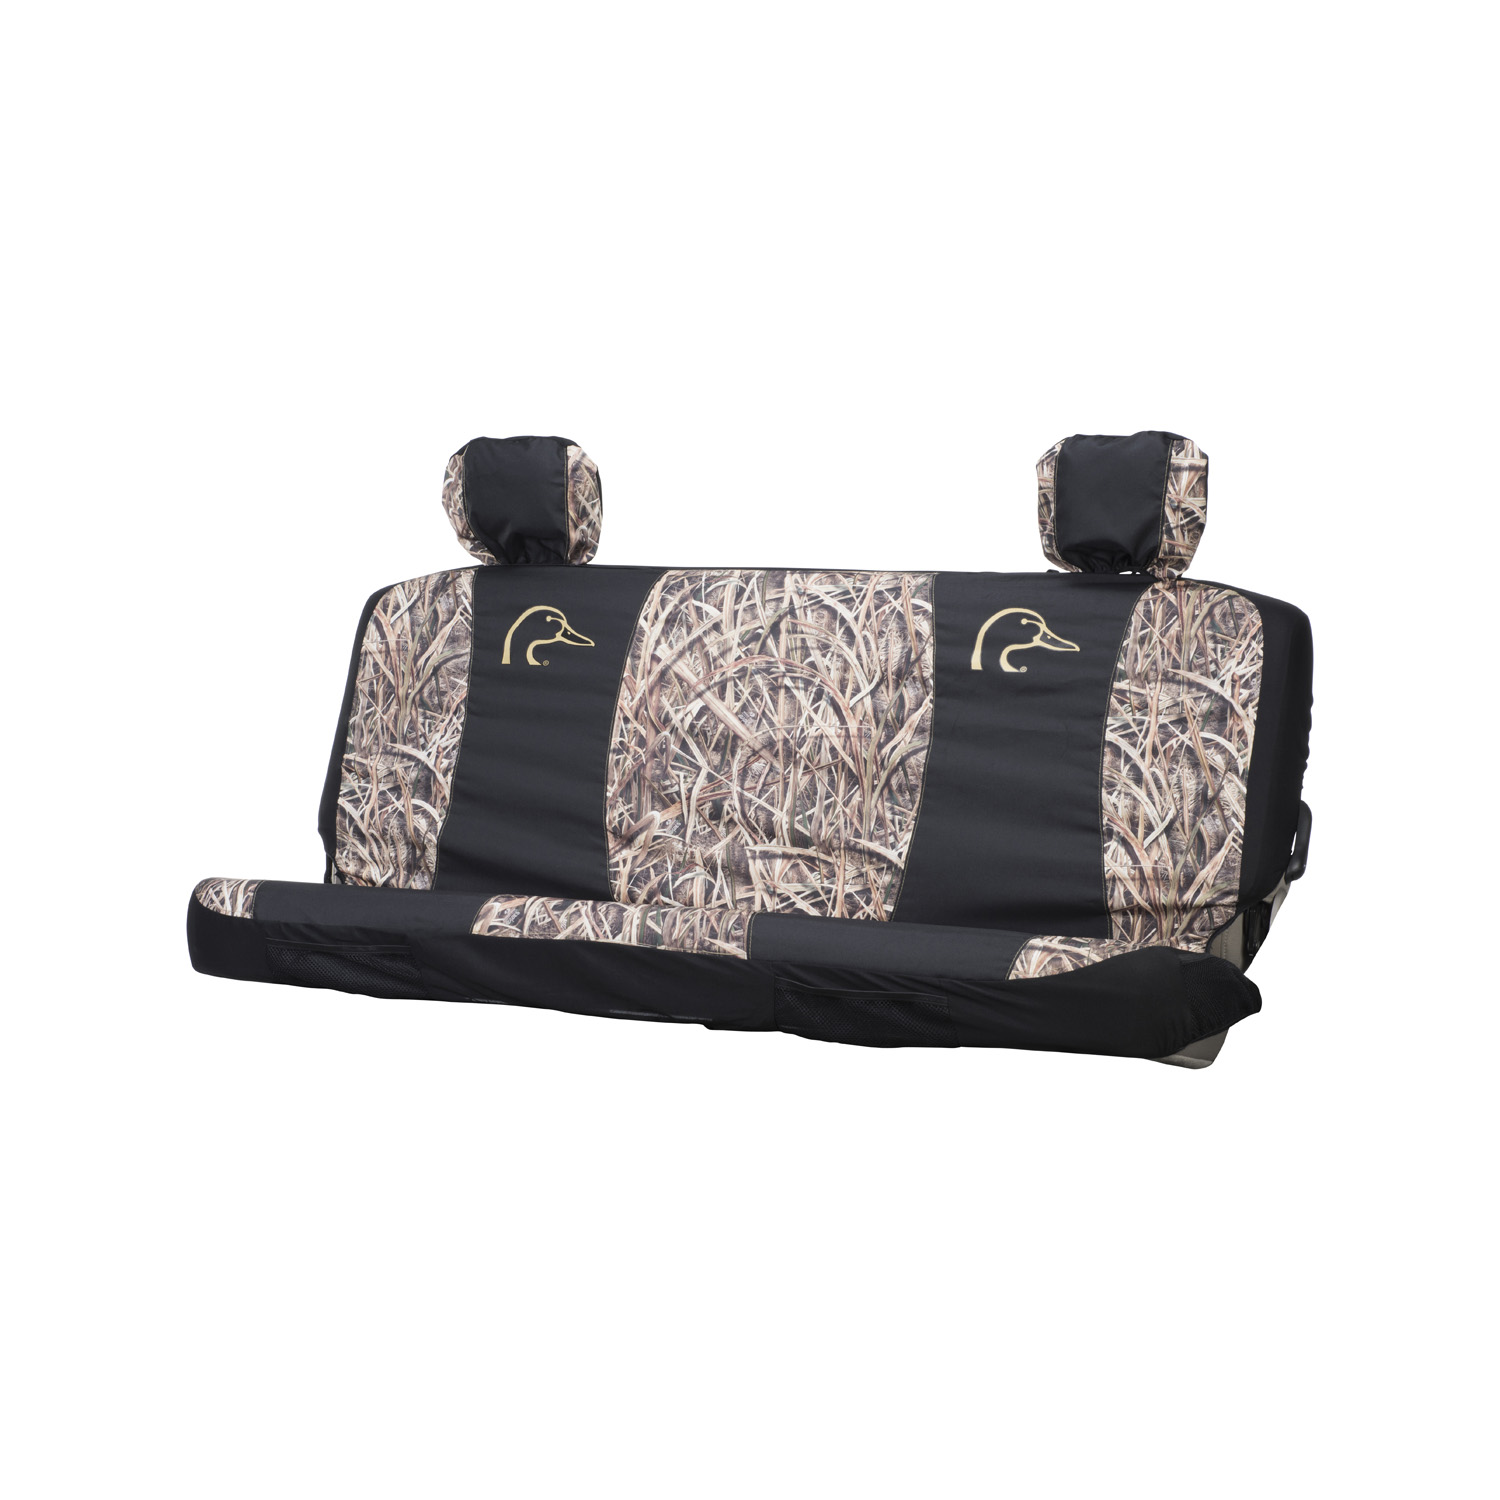 Ducks Unlimited Full Size Bench Seat Cover, Shadow Grass Blades Camo ...